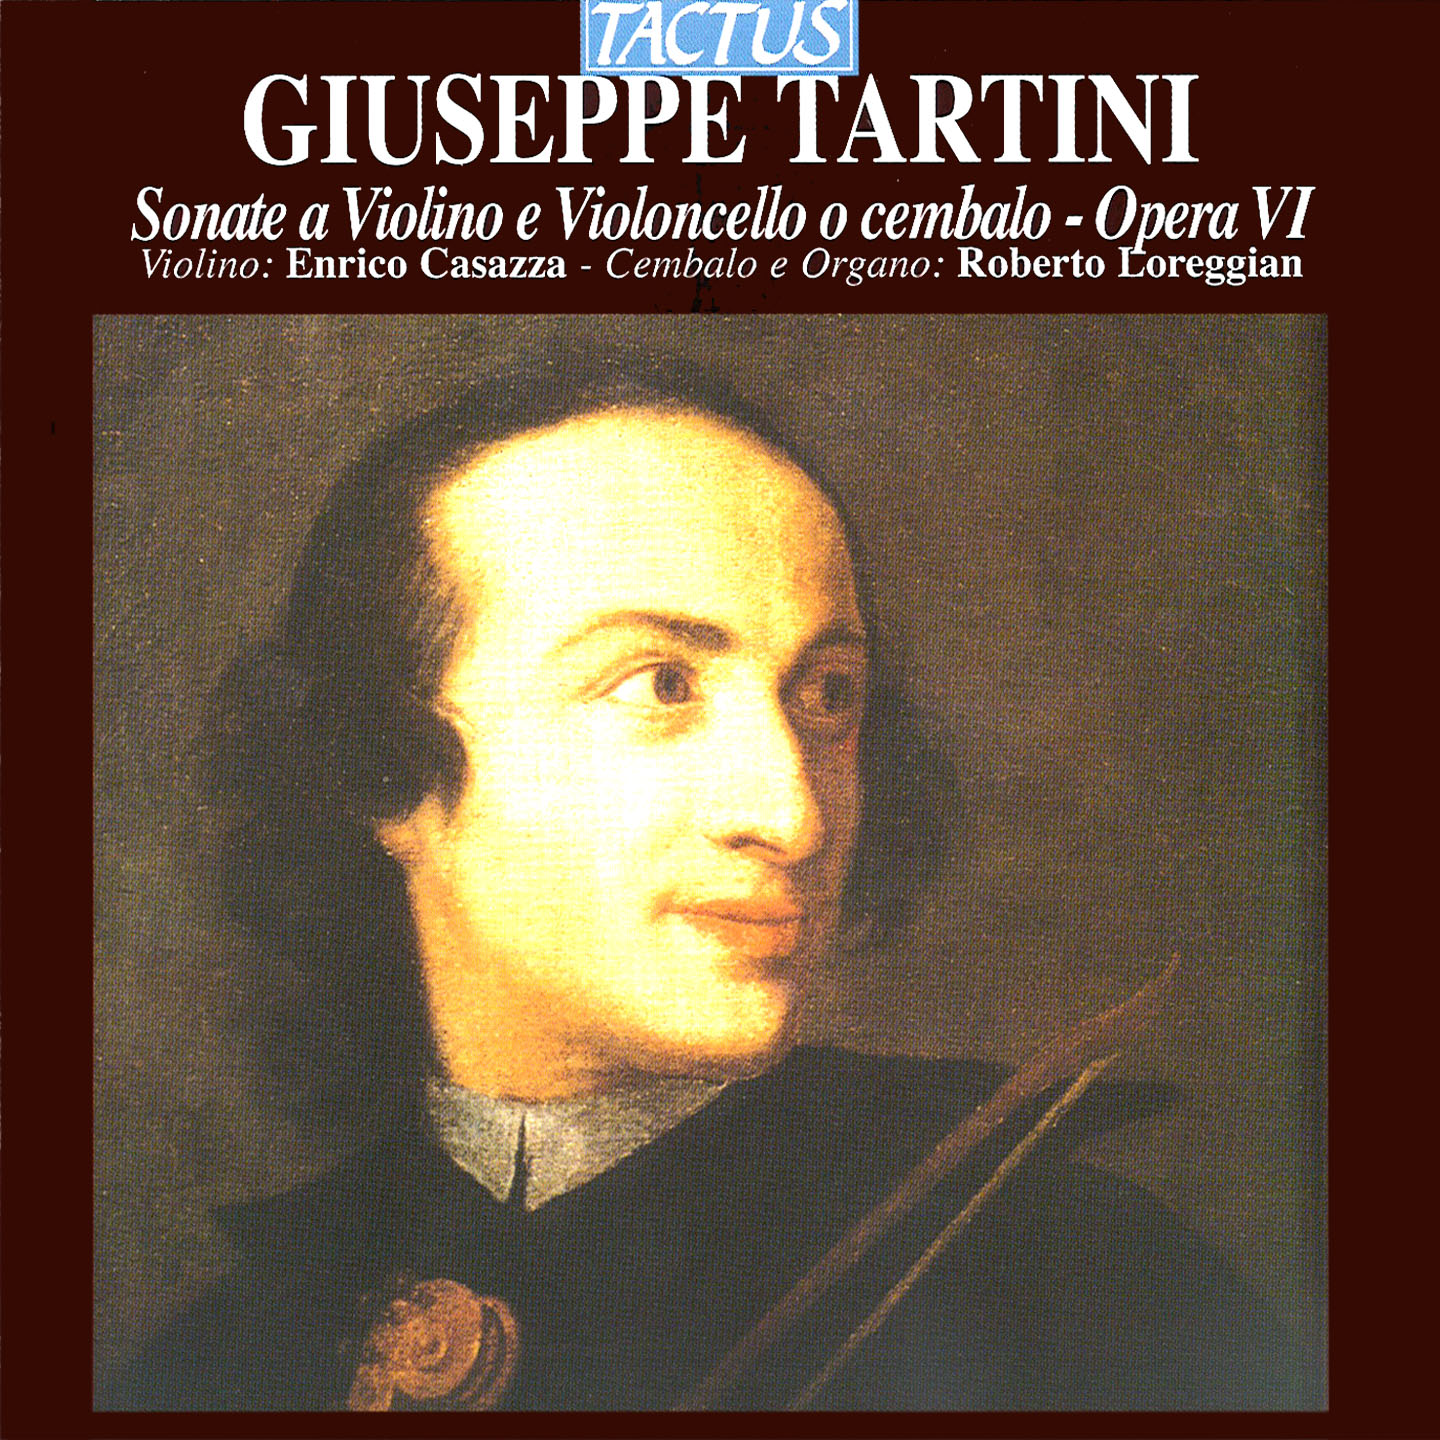 Violin Sonata in A Major, Op. 6, No. 2, Violin Sonata in A Major, Op. 6, No. 2: III. Allegro